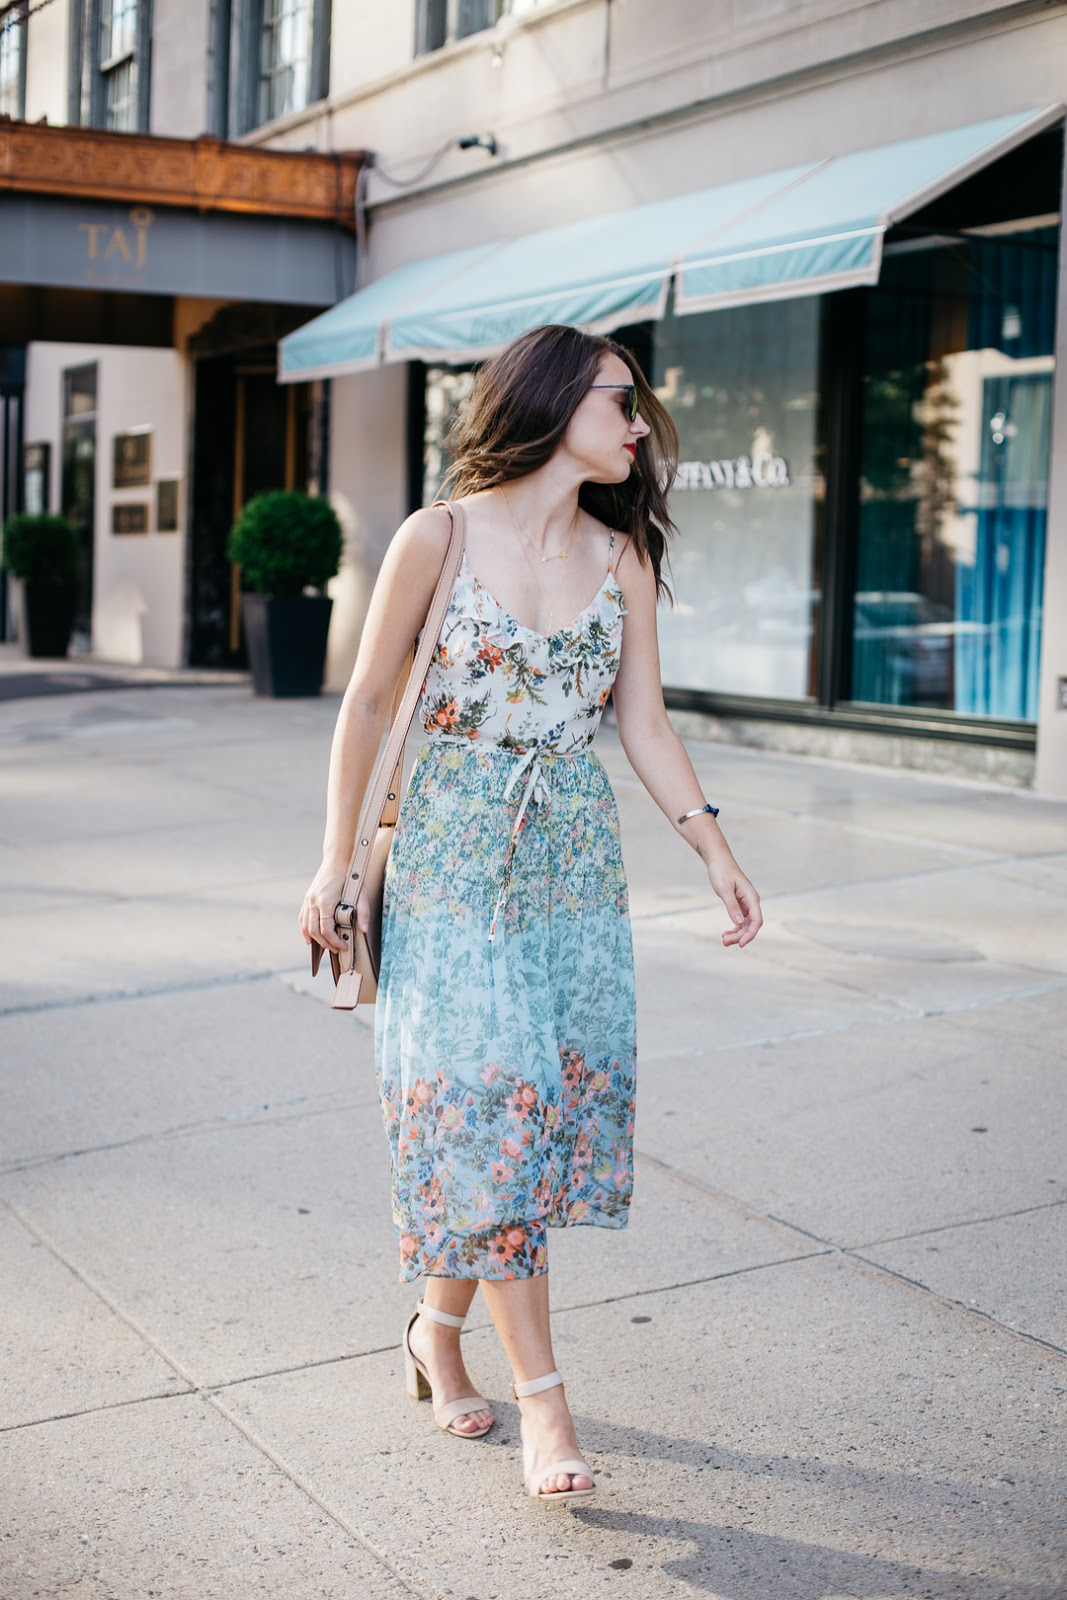 Stay cool but look hot in this floaty, floral midi dress from Oasis